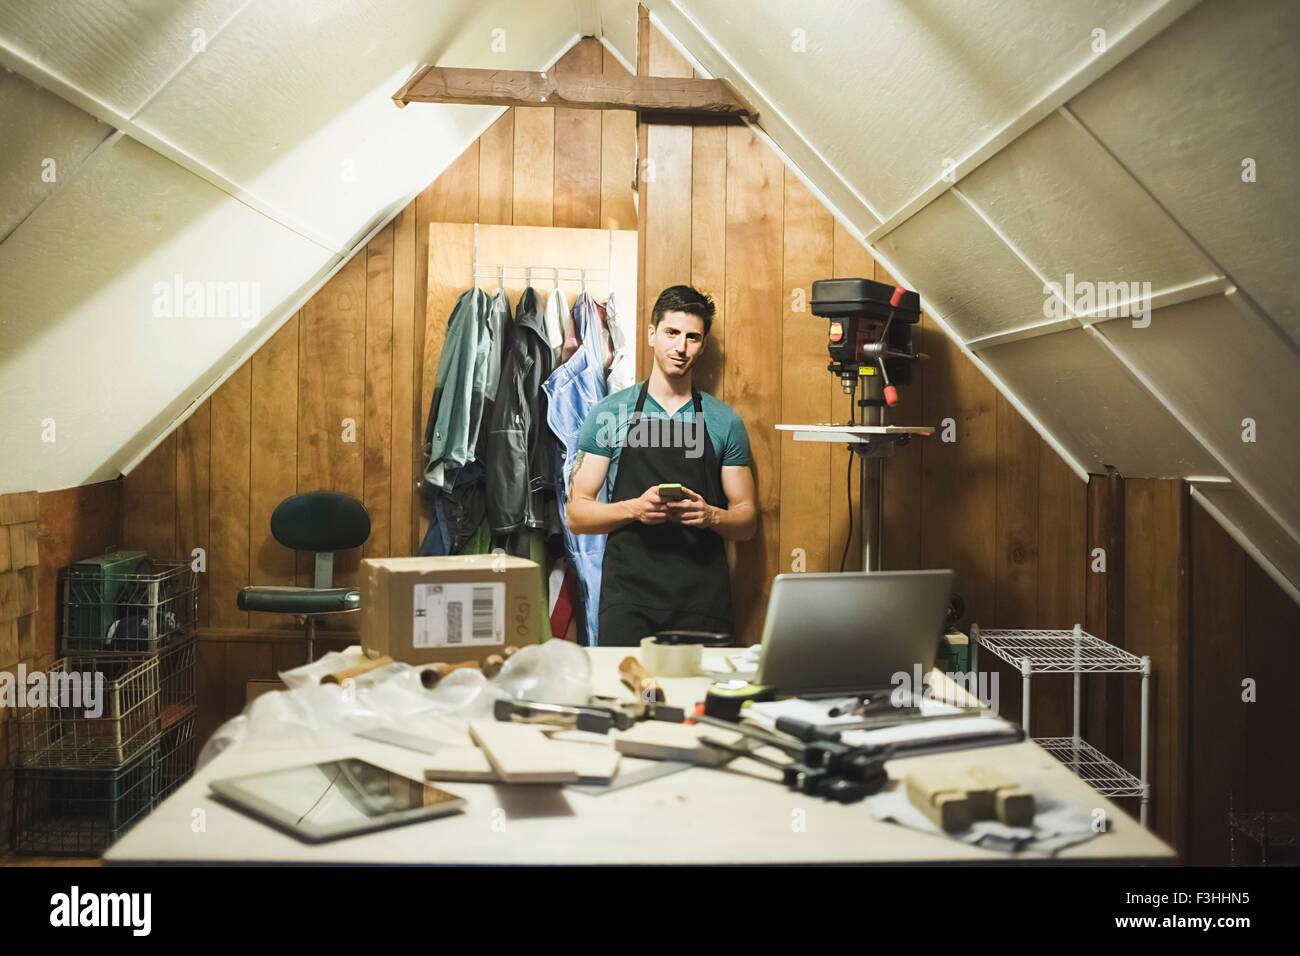 Young man wearing apron standing behind desk in workshop, looking at camera - Stock Image